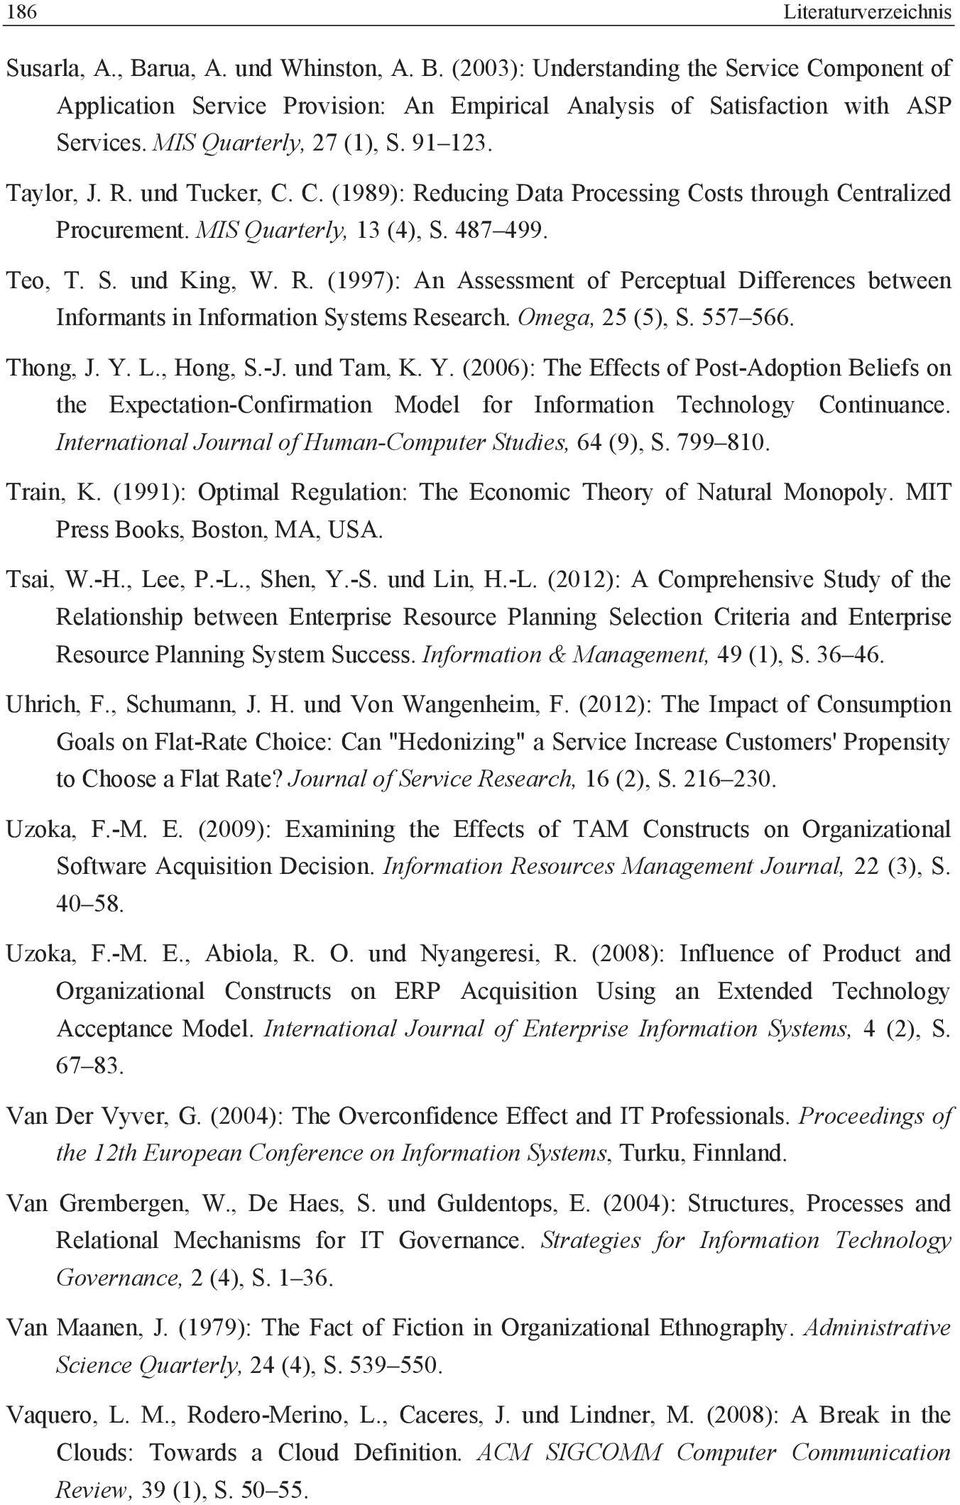 Omega, 25 (5), S. 557 566. Thong, J. Y. L., Hong, S.-J. und Tam, K. Y. (2006): The Effects of Post-Adoption Beliefs on the Epectation-Confirmation Model for Information Technology Continuance.